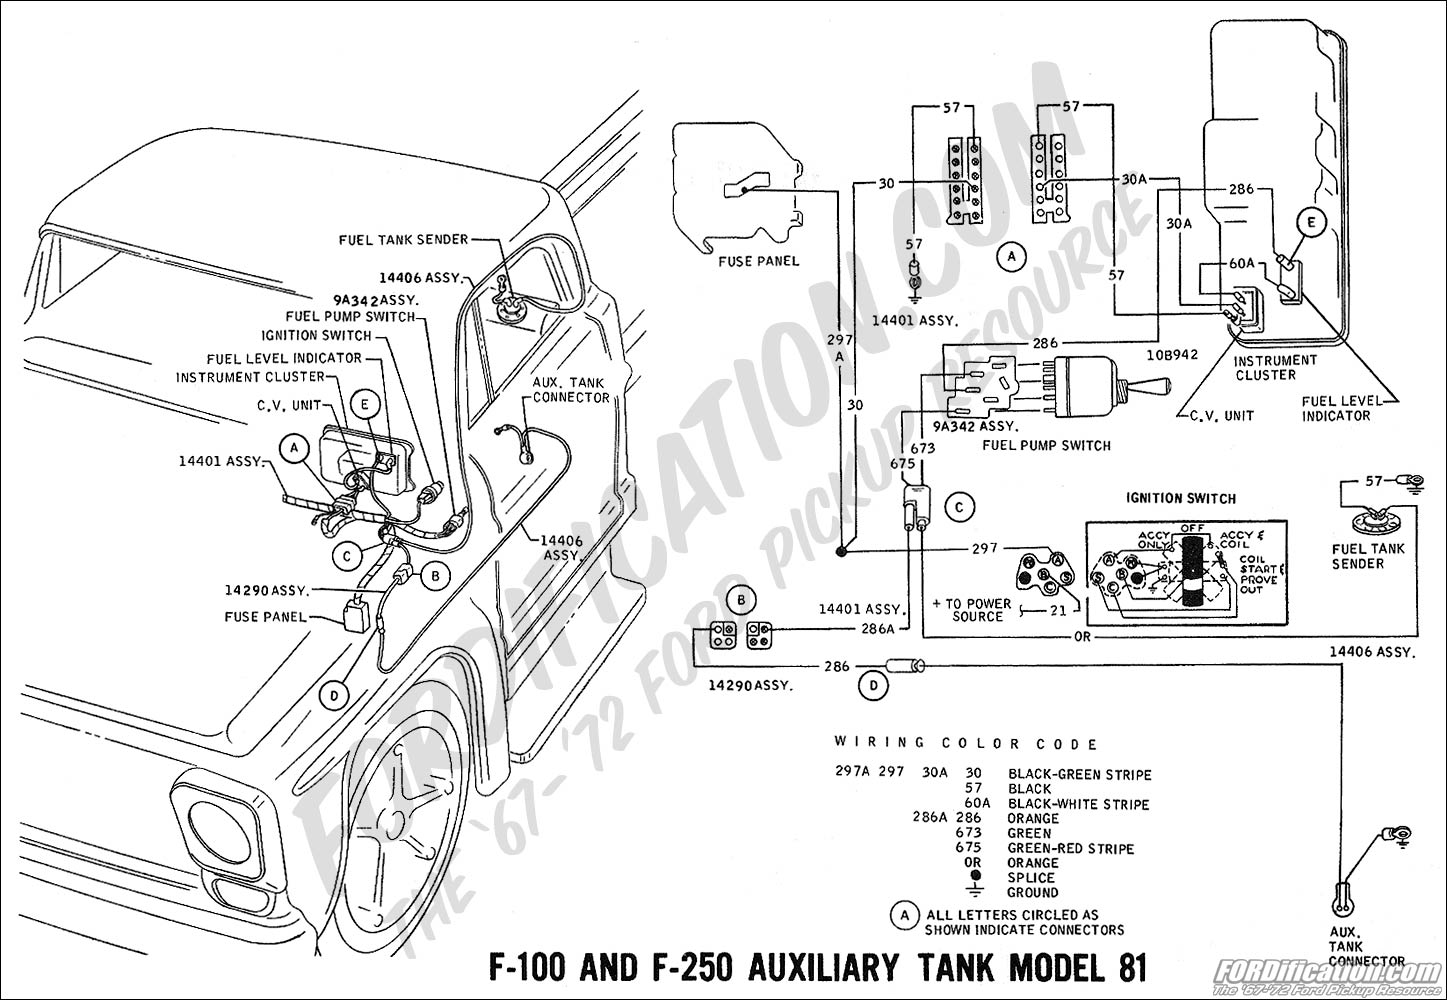 1988 Ford E150 Van Wiring Diagram 2002 Econoline Fuse Box Books Of Truck Technical Drawings And Schematics Section H Windstar